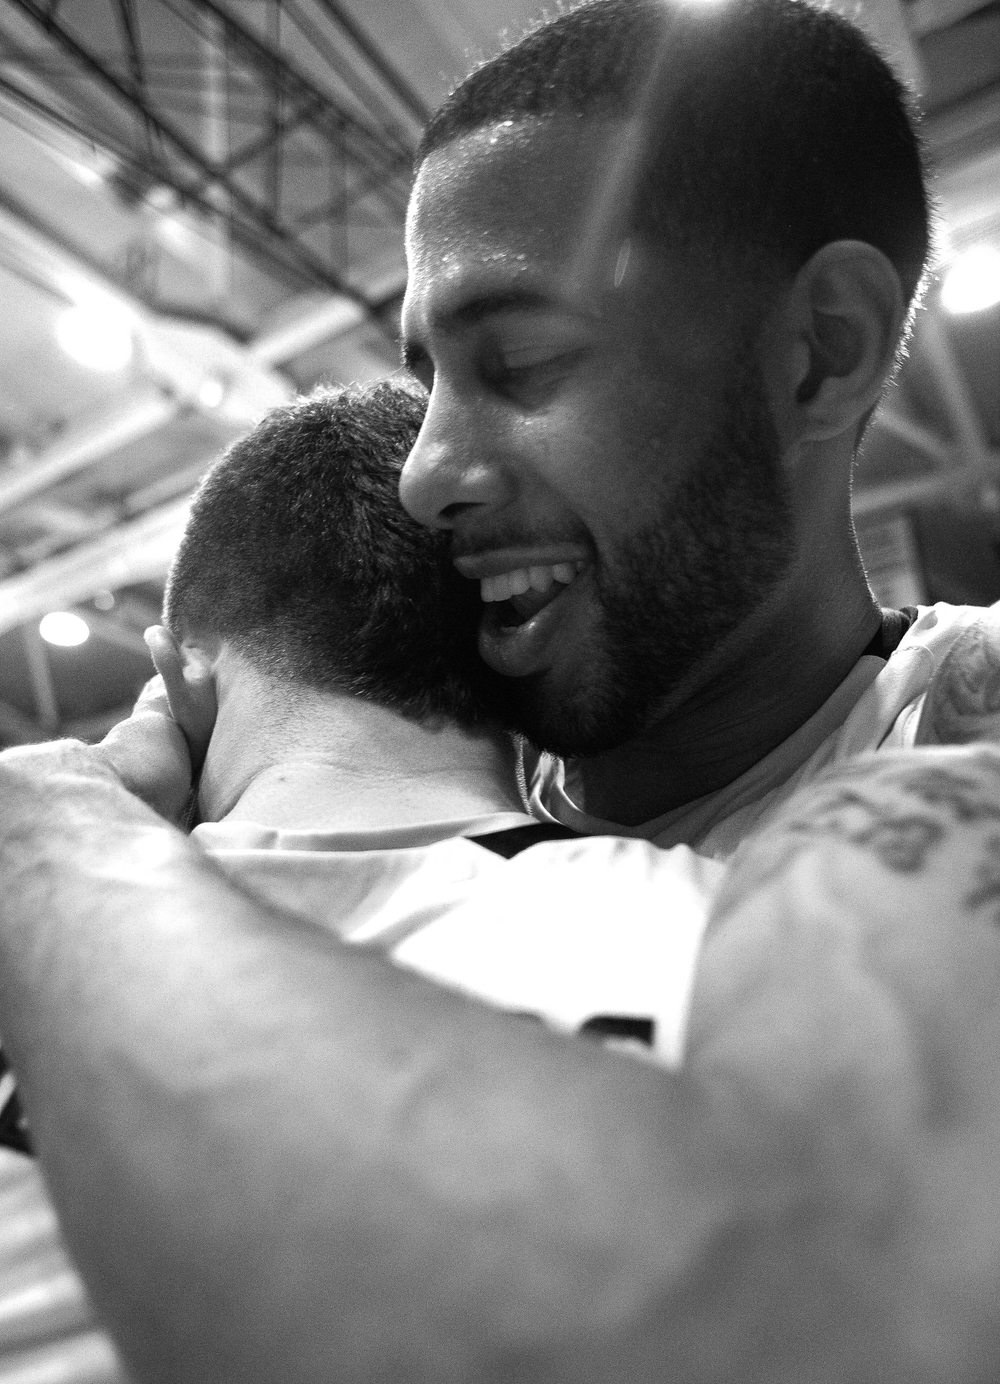 Towson University men's basketball guards Mike Burwell and Brian  Blackstone embrace after a record breaking win over Hofstra University  on March 2, 2013 in Baltimore, Md.